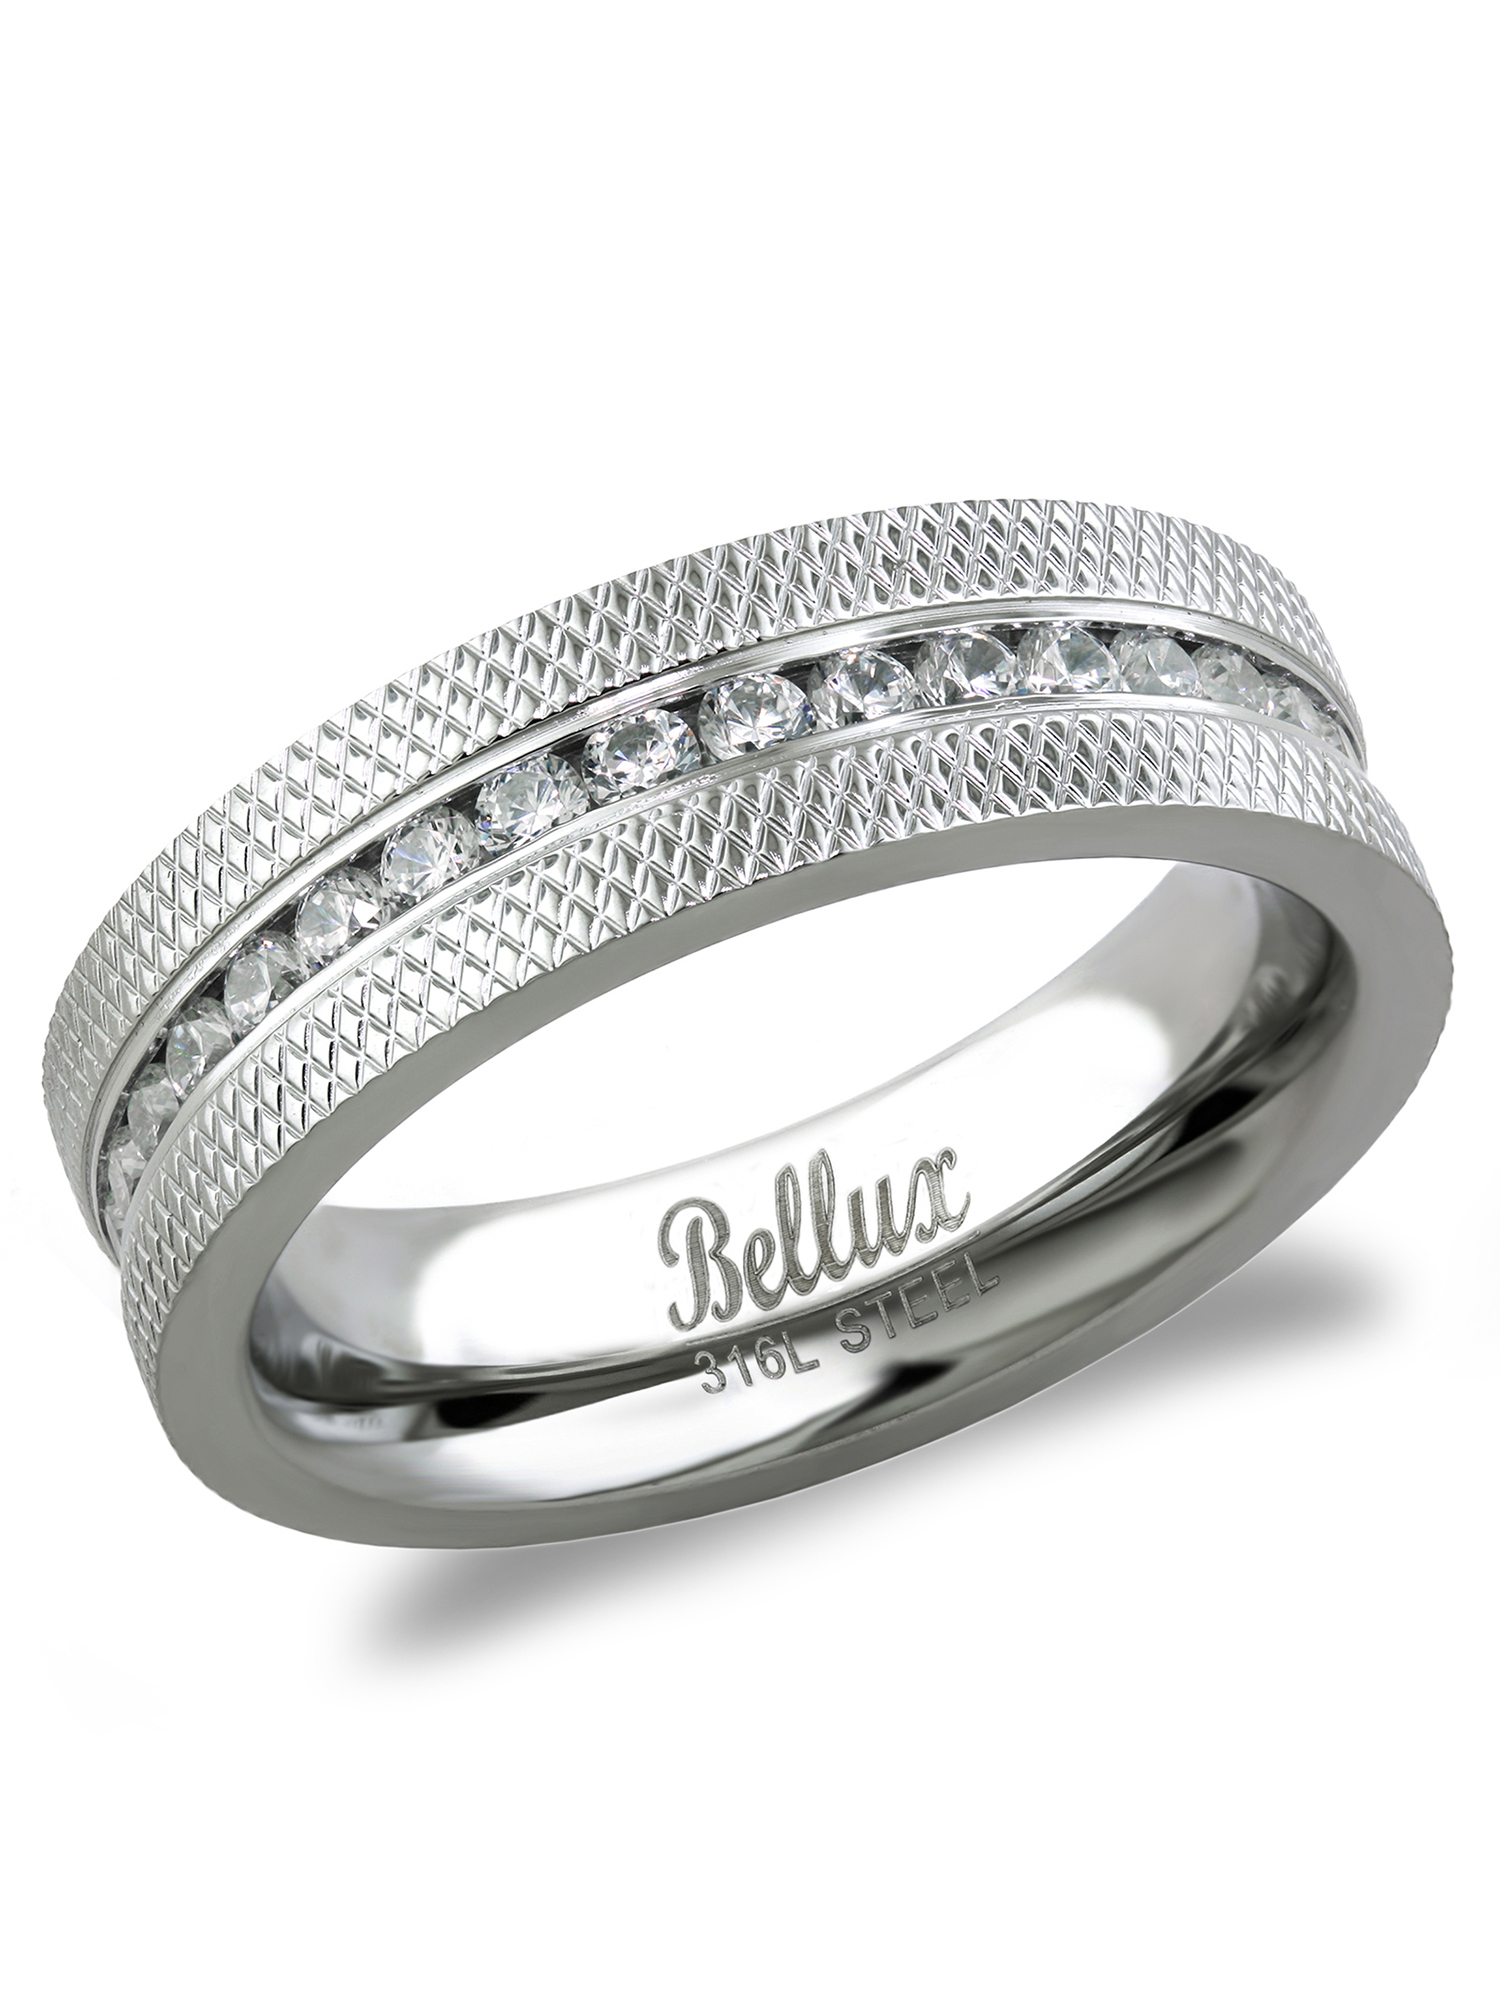 Bellux Style just launched on Walmart Marketplace Pulse